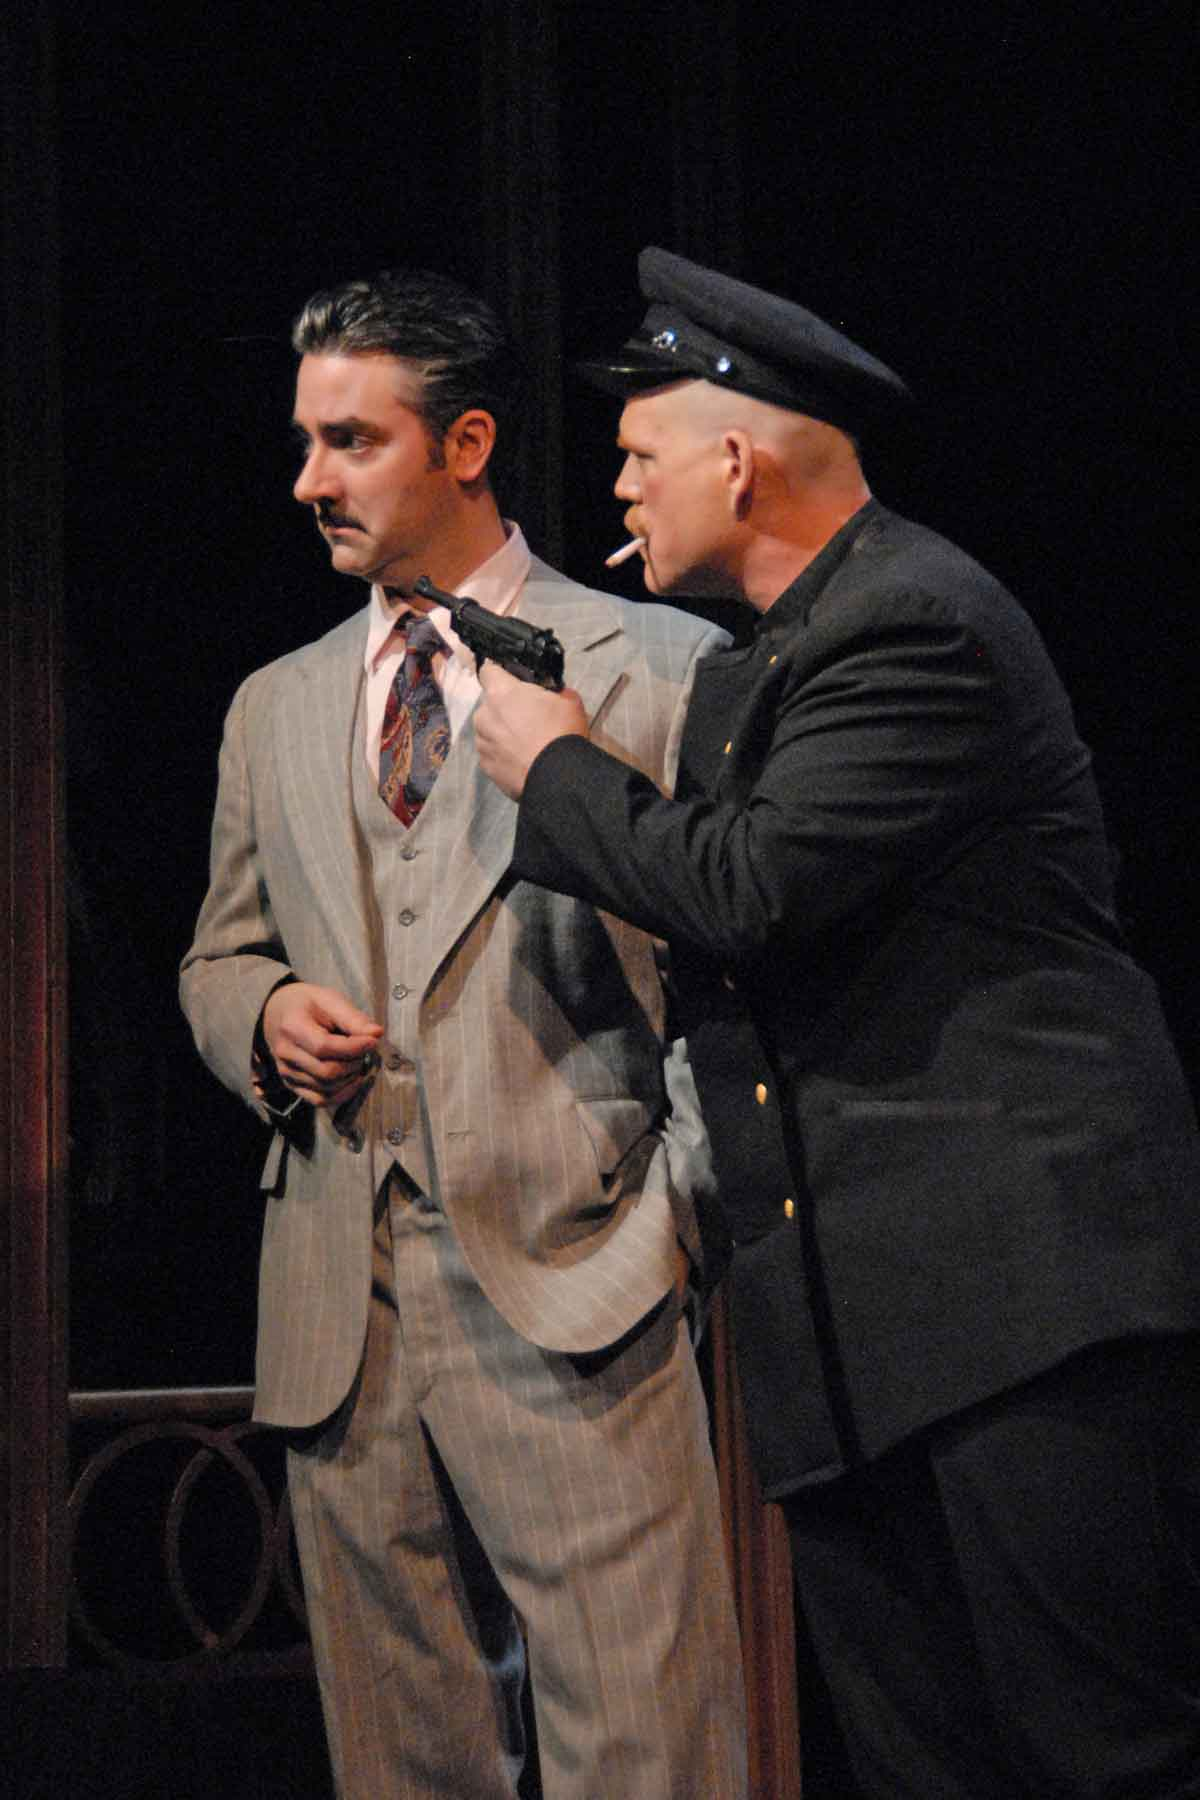 Matthew Haywood and Brandon B. Weaver in Grand Hotel